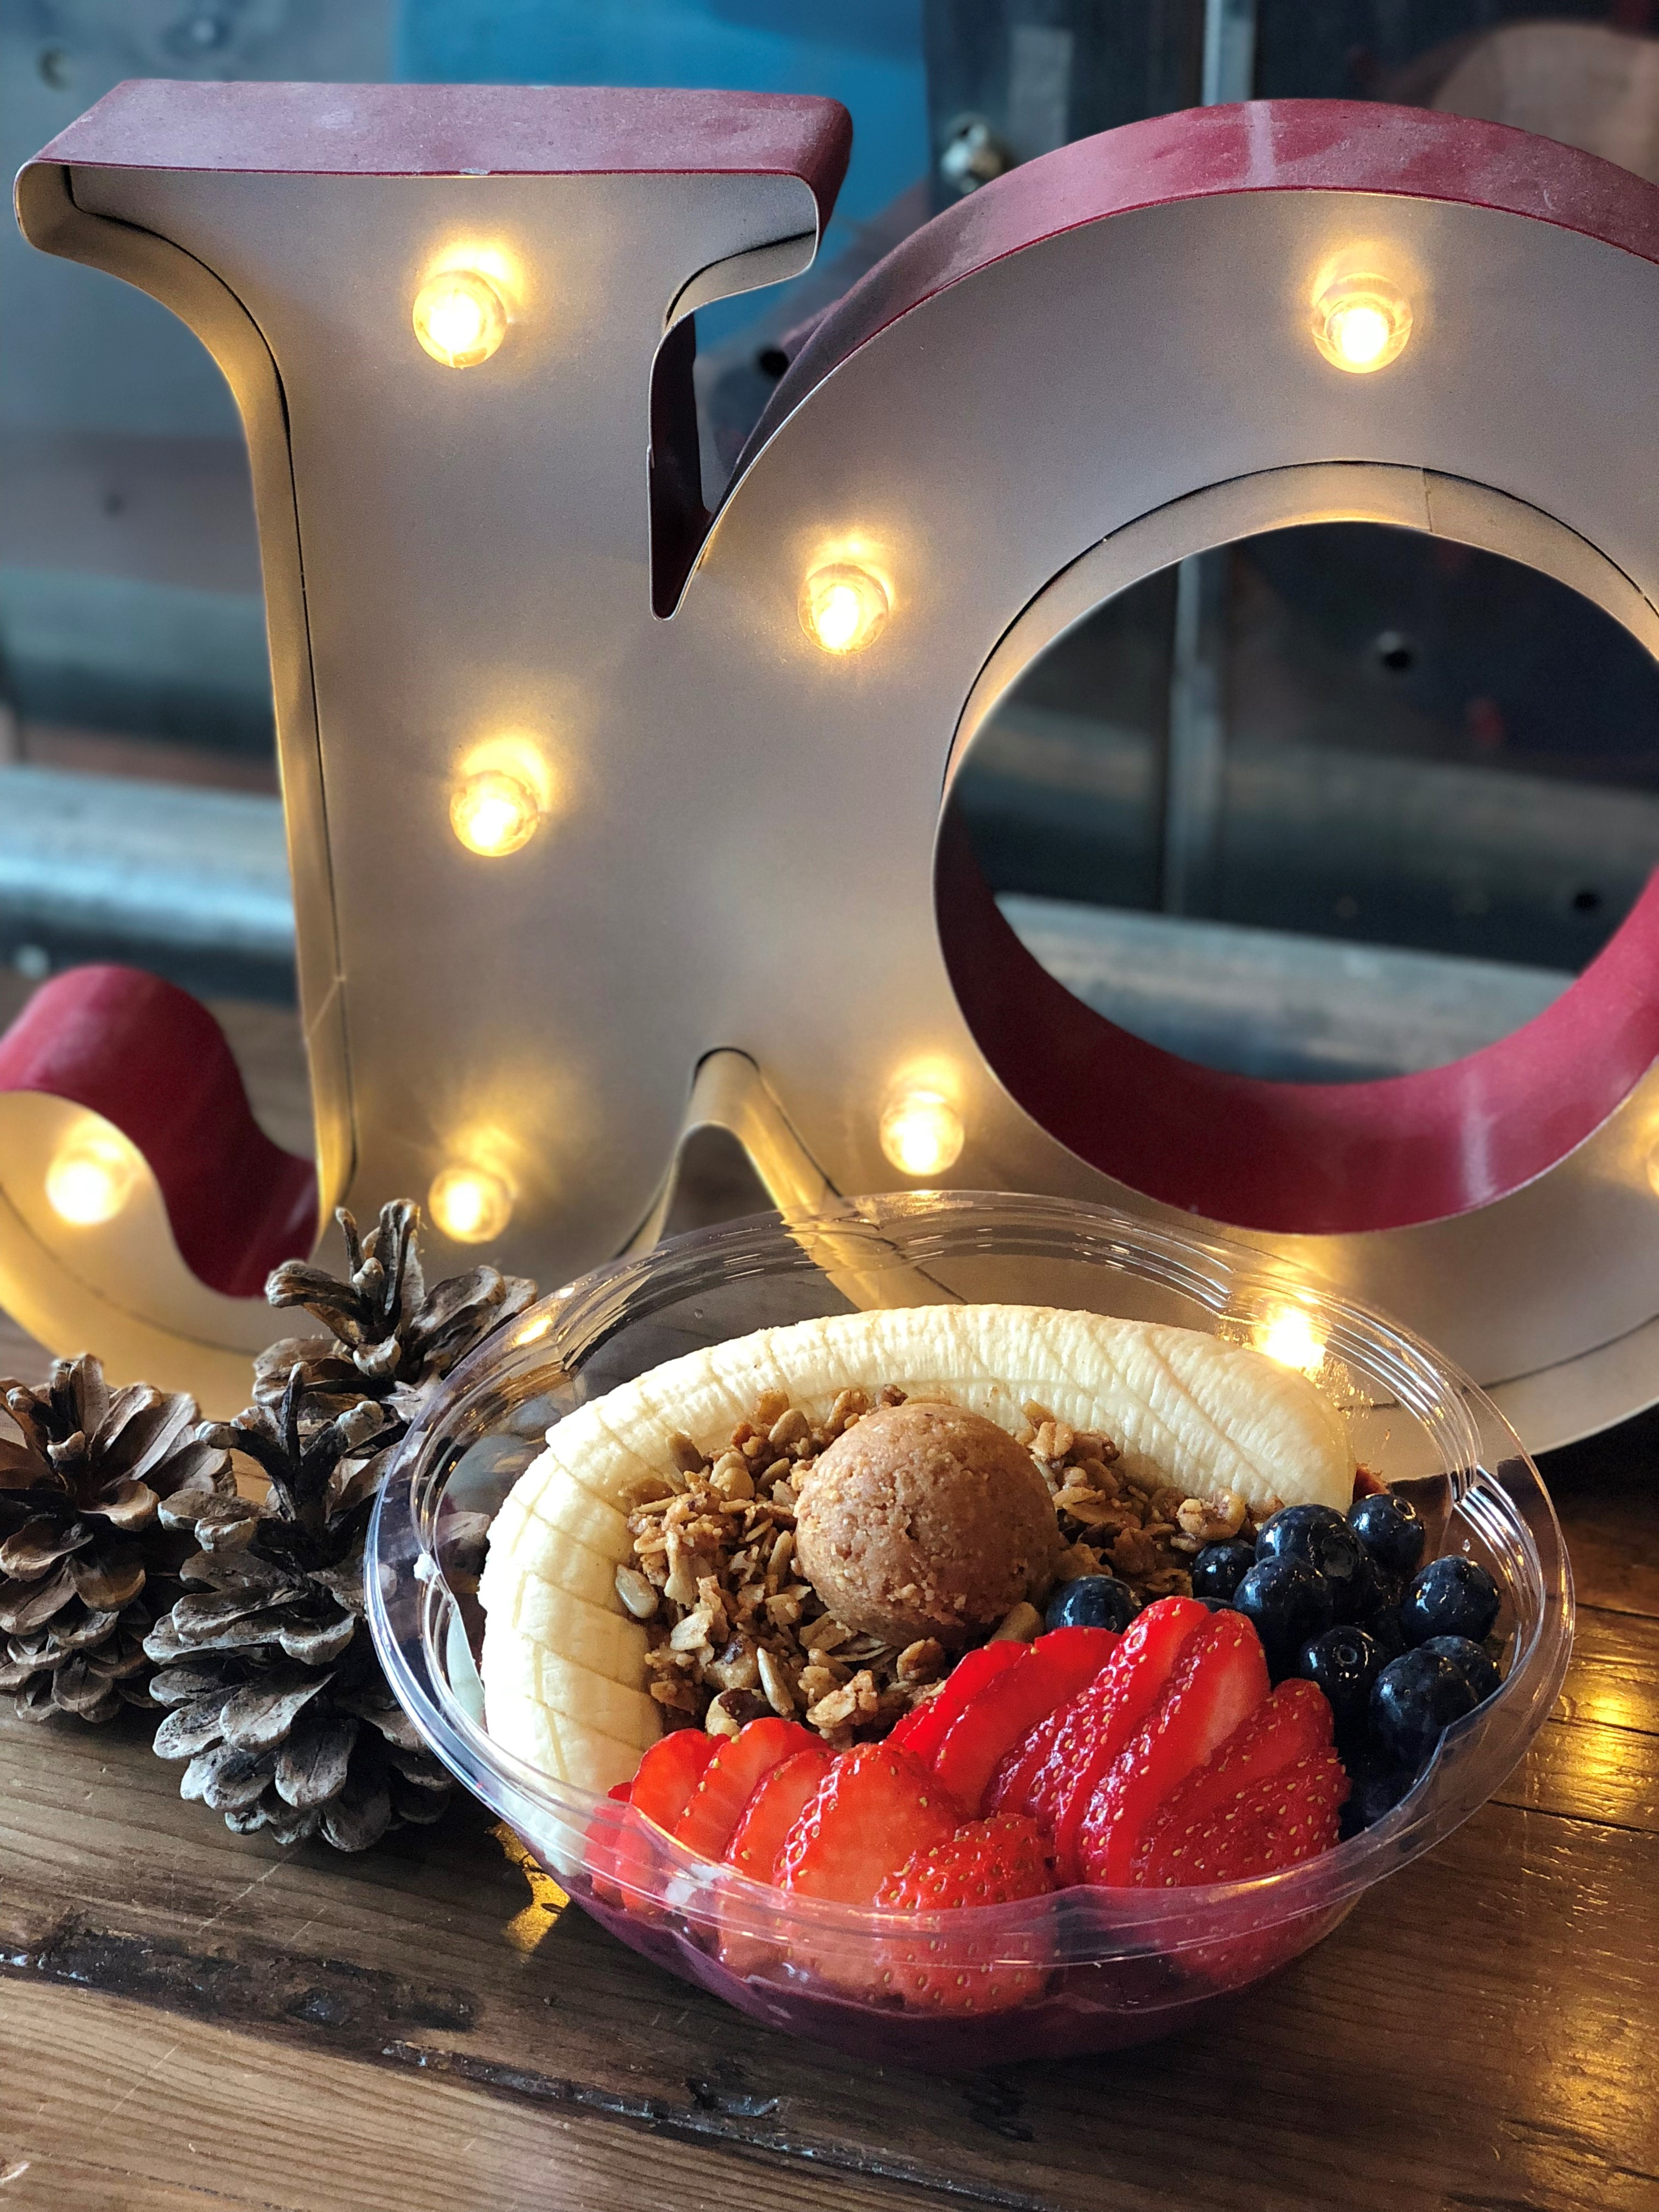 Their featured bowl is the Mixed Berry Acaí Bowl with Nut Butter, which is a blend of strawberries, blueberries, banana, and acaí. (Credit: Skylar Lin)<p></p><p></p>